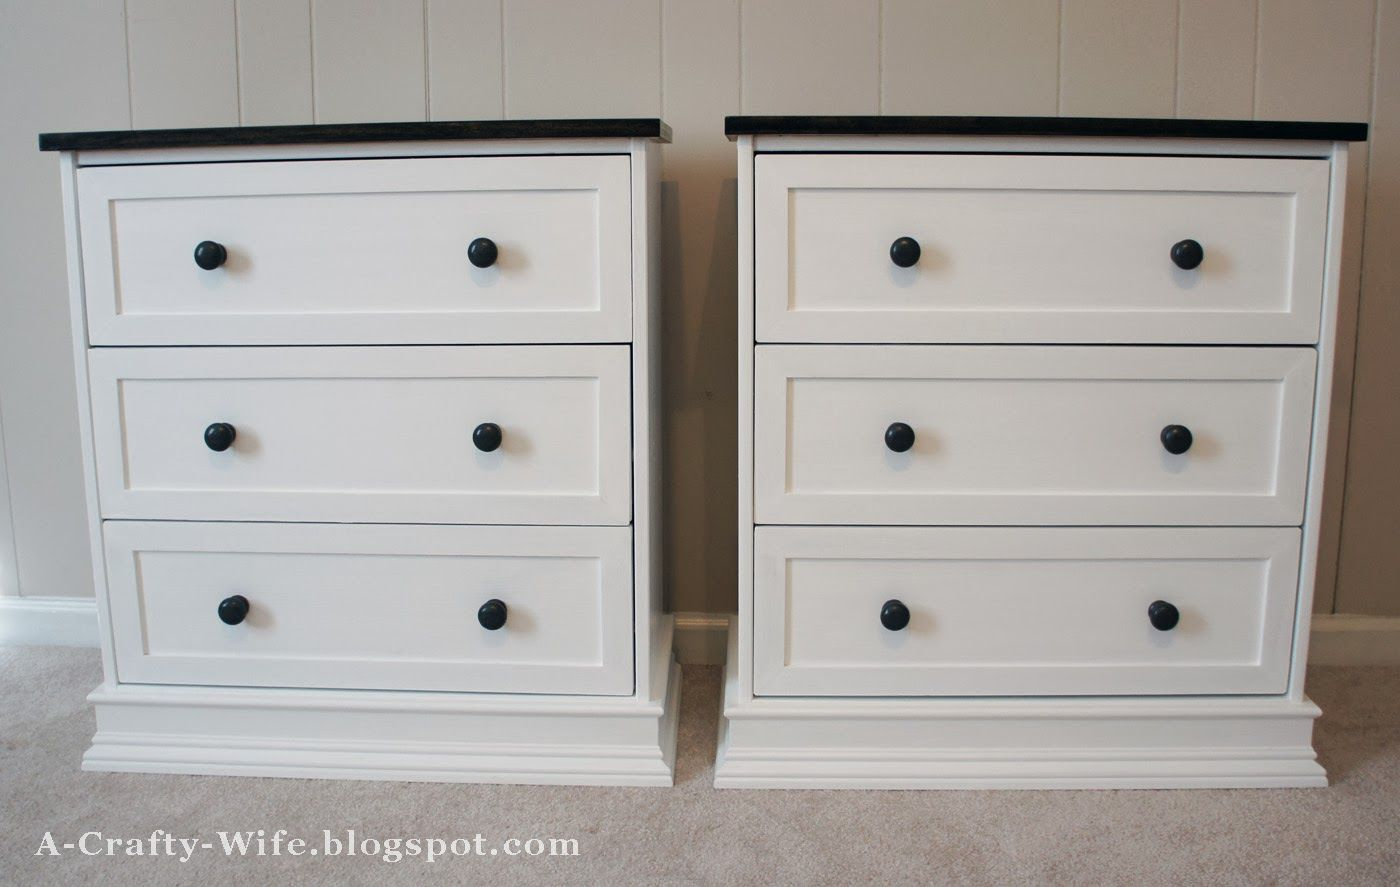 Ikea Rast Hack For Bedside Tables Finished Shot A Crafty Wife